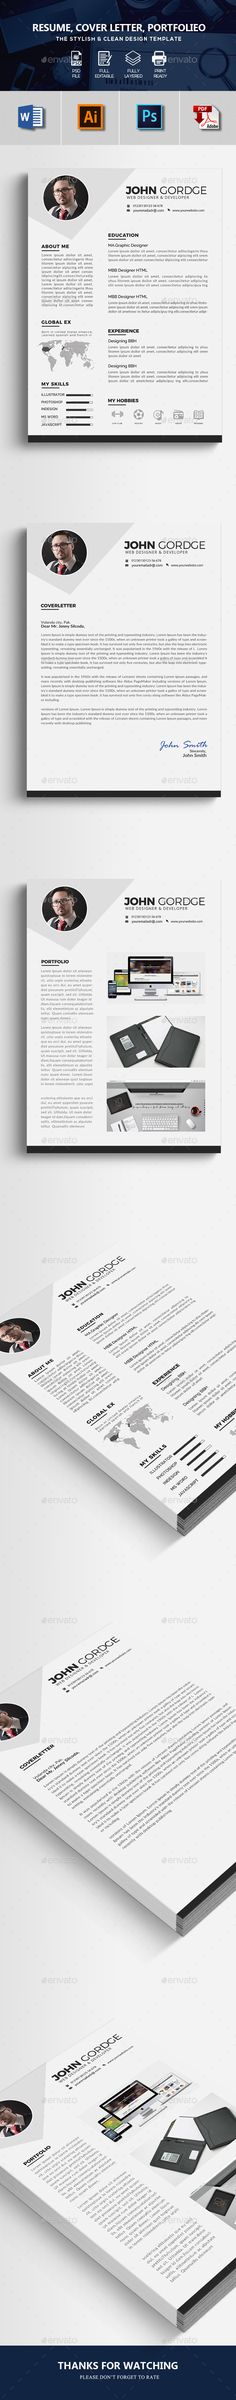 simple clean minimal CV Resume Stationery template